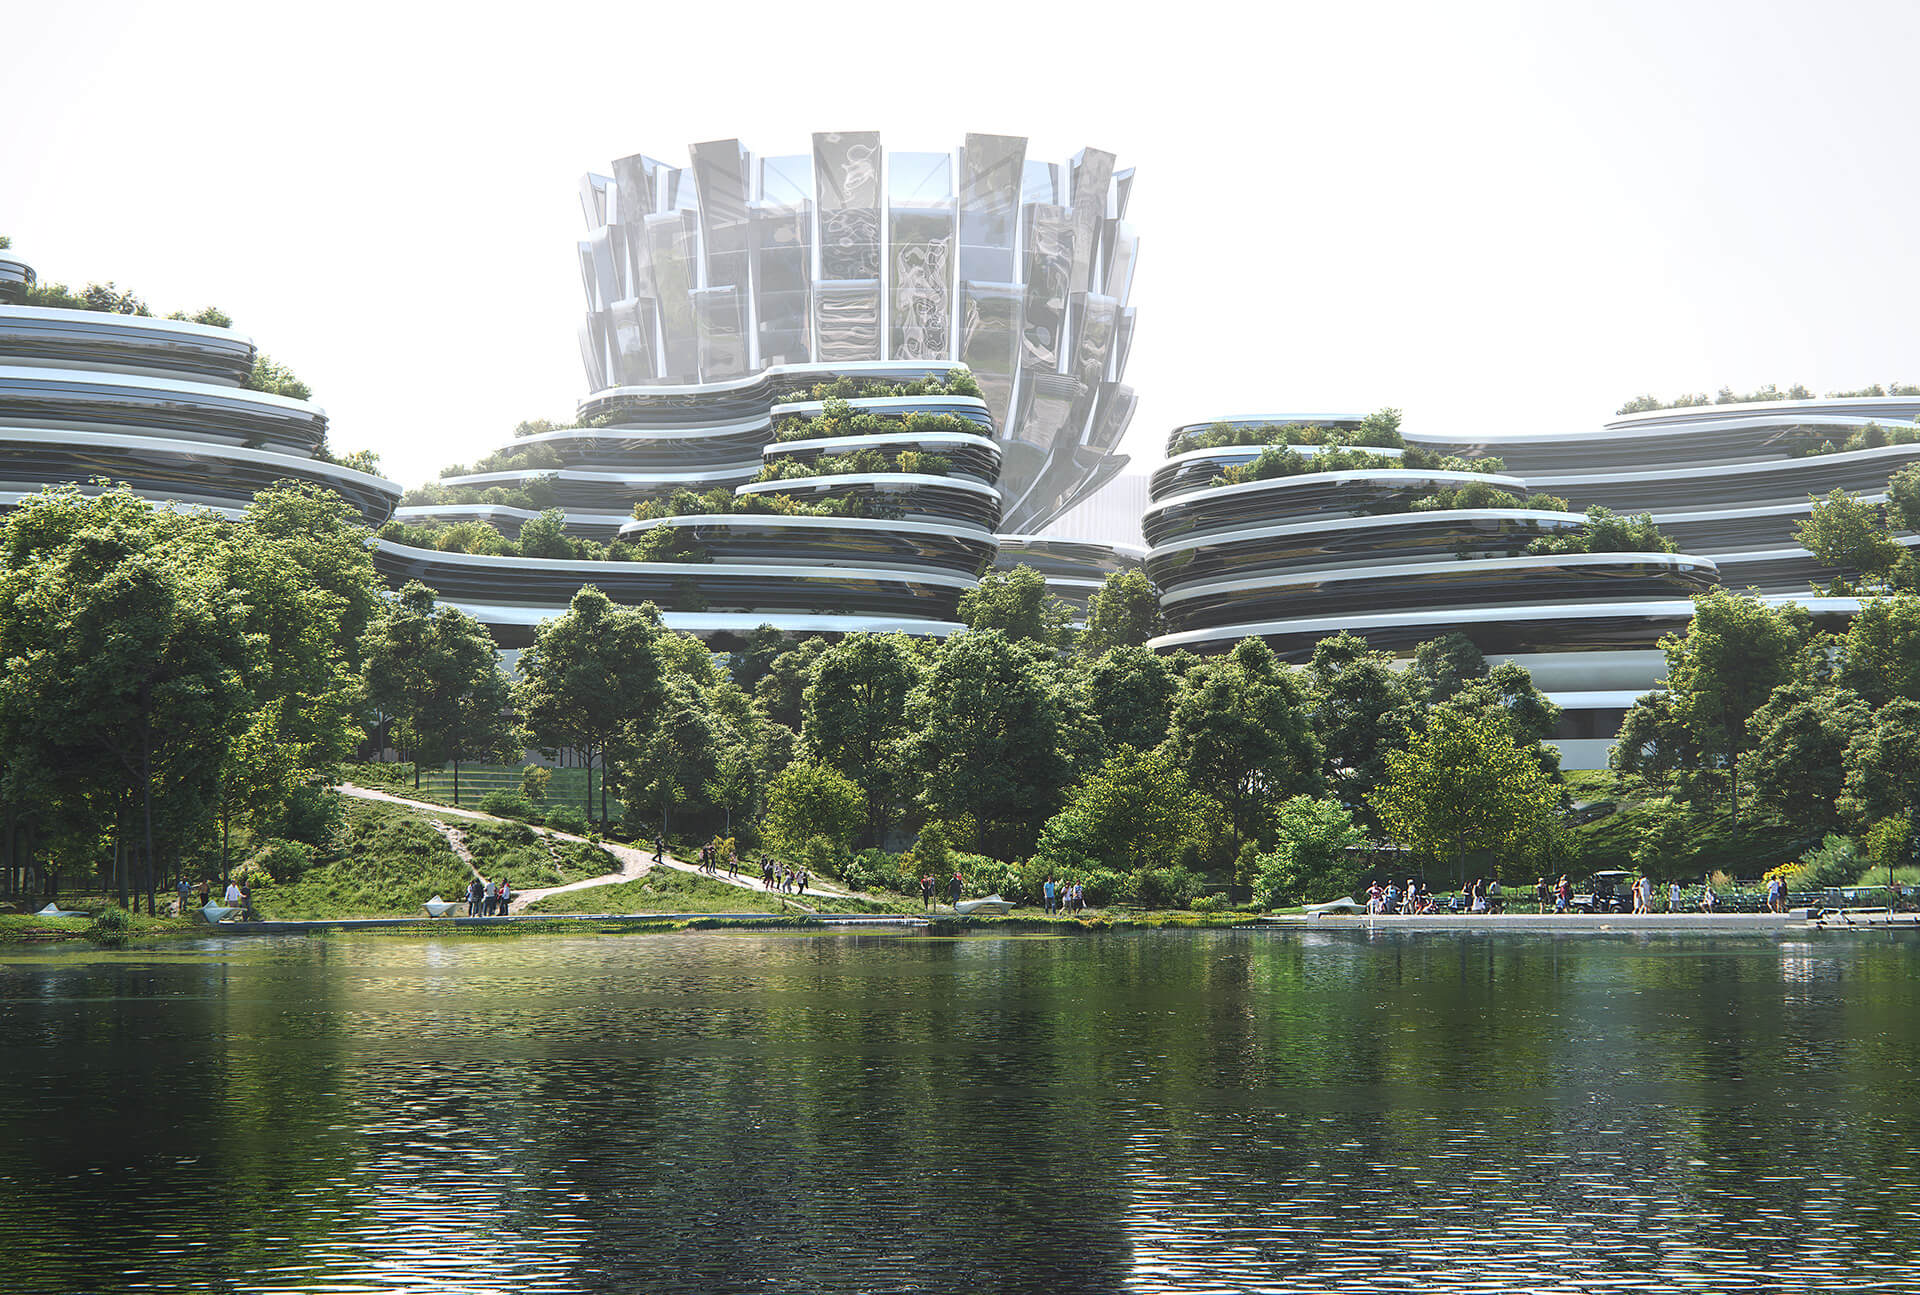 Unicorn Island's Future Fortress surrounded by greens | Unicorn Island Masterplan| Zaha Hadid Architects | STIRworld